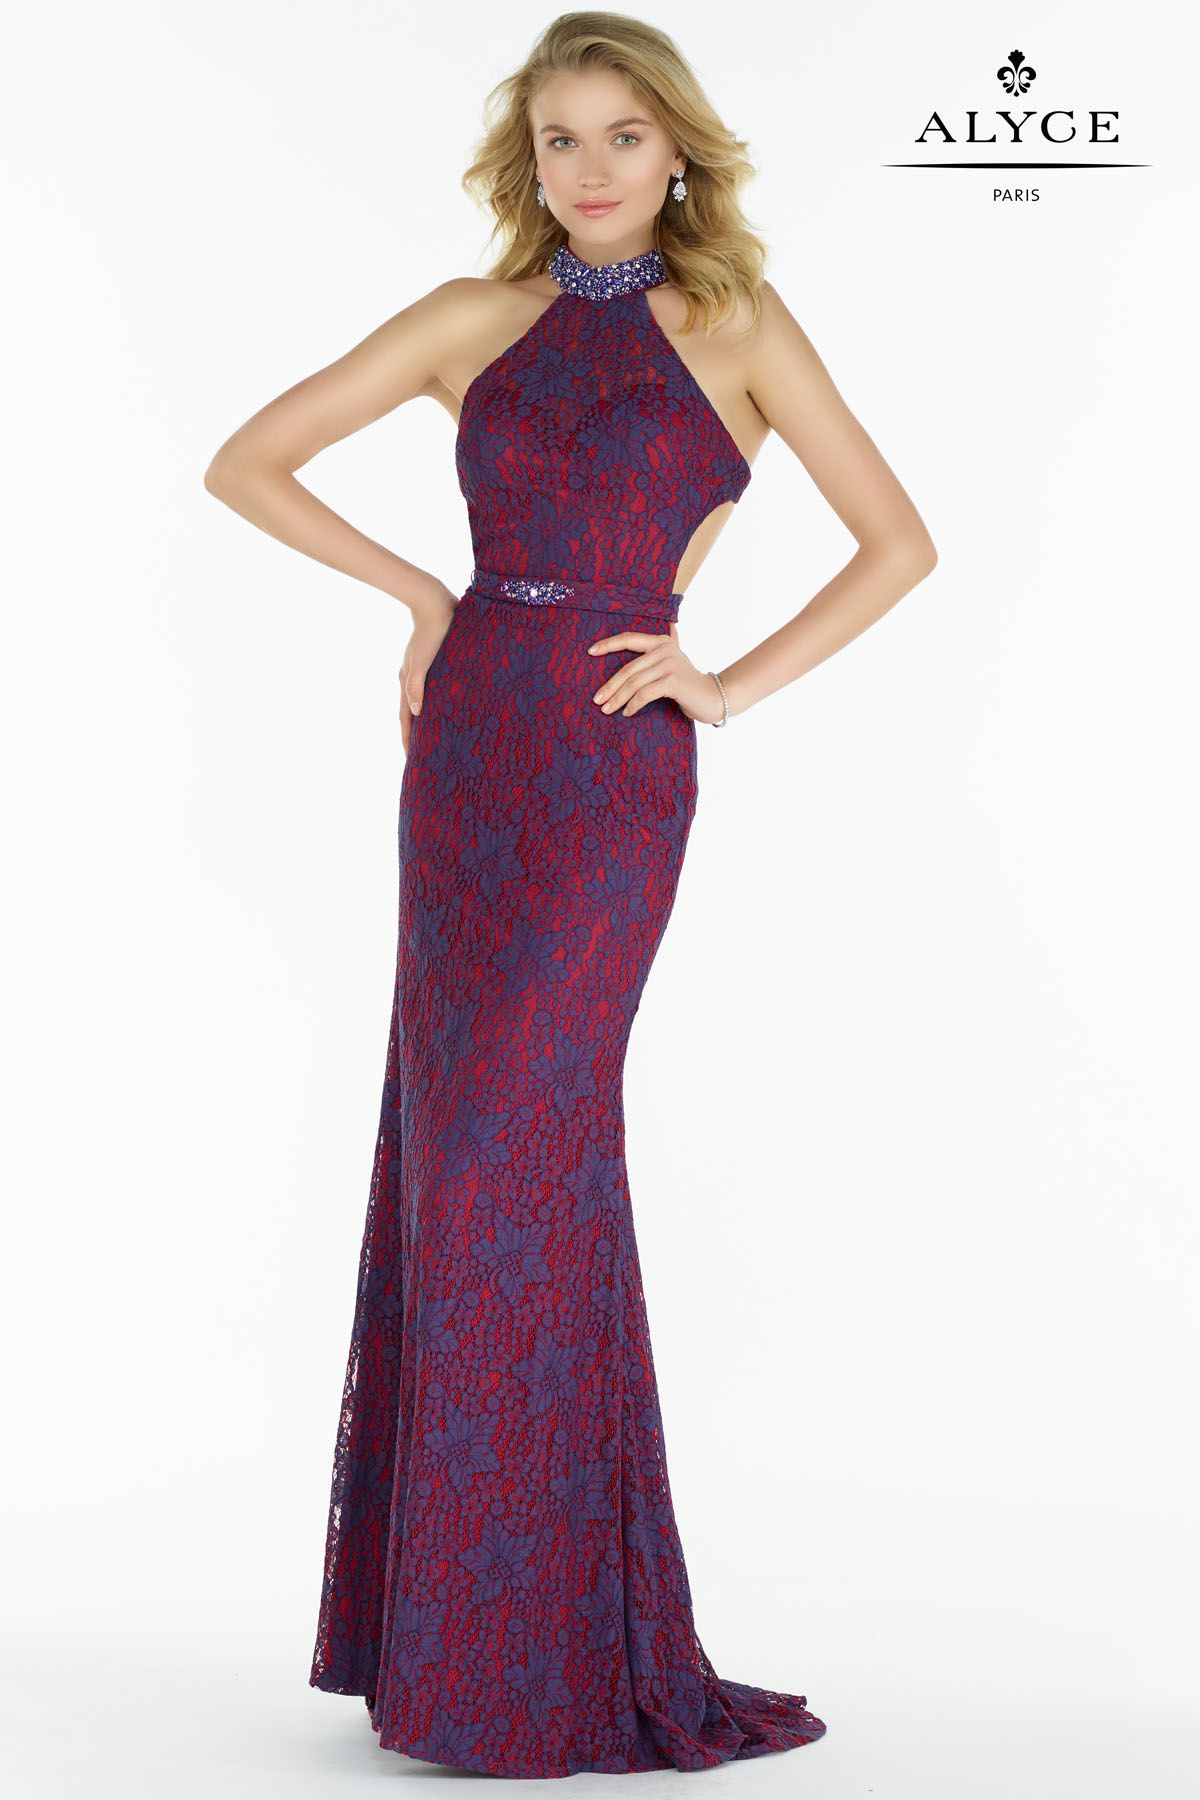 Alyce Paris 6787 - International Prom Association | Alyce Paris Prom ...